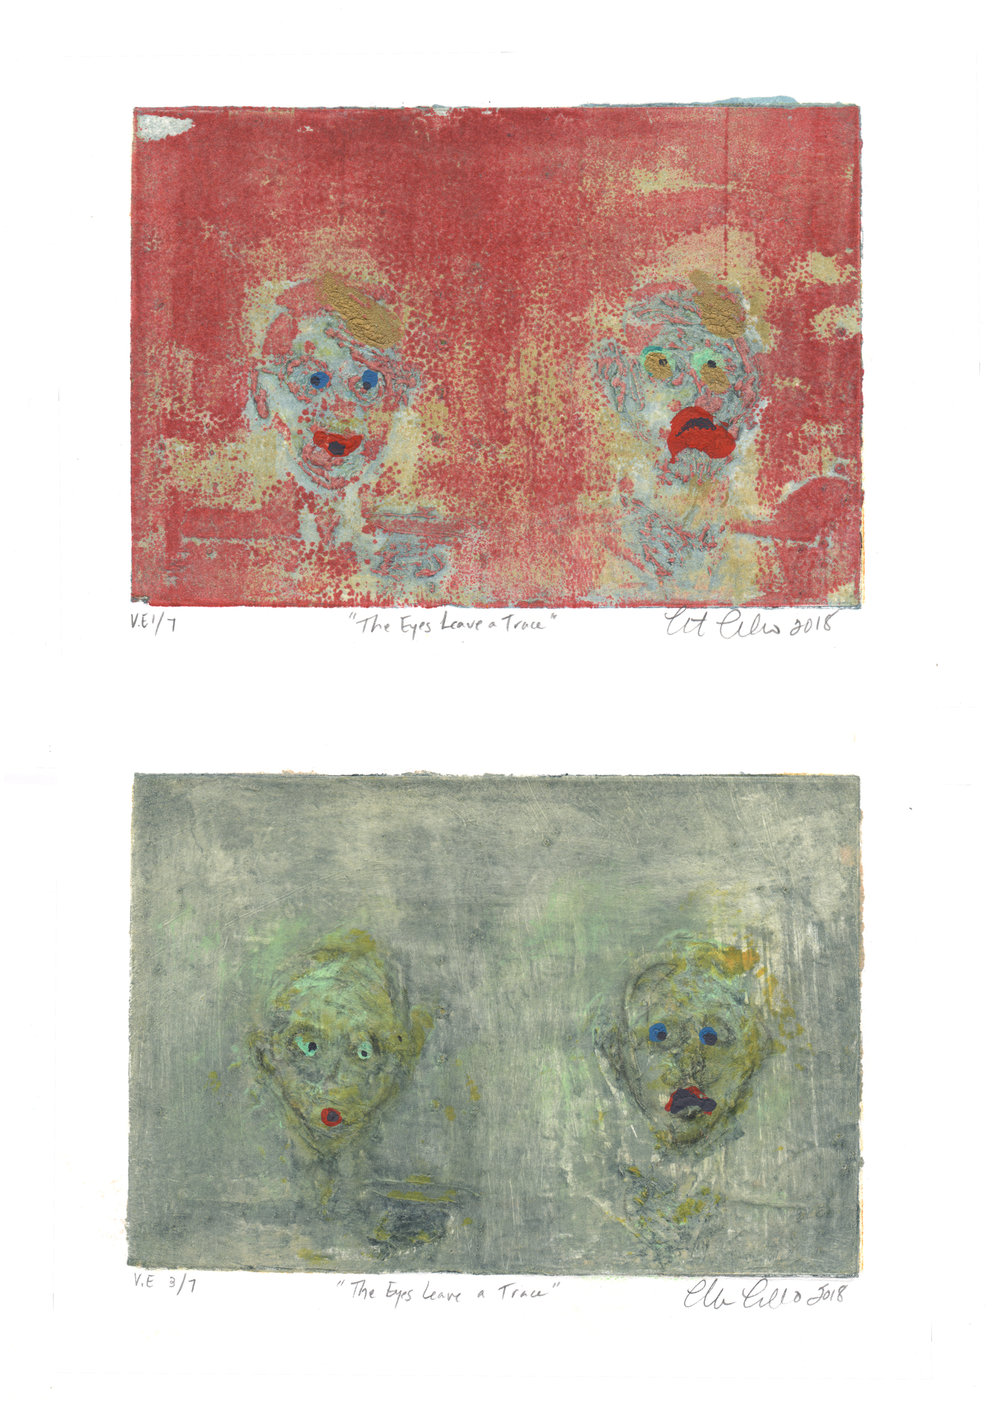 Christine Cosentino, The Eyes Leave a Trace, collagraph and monoprint